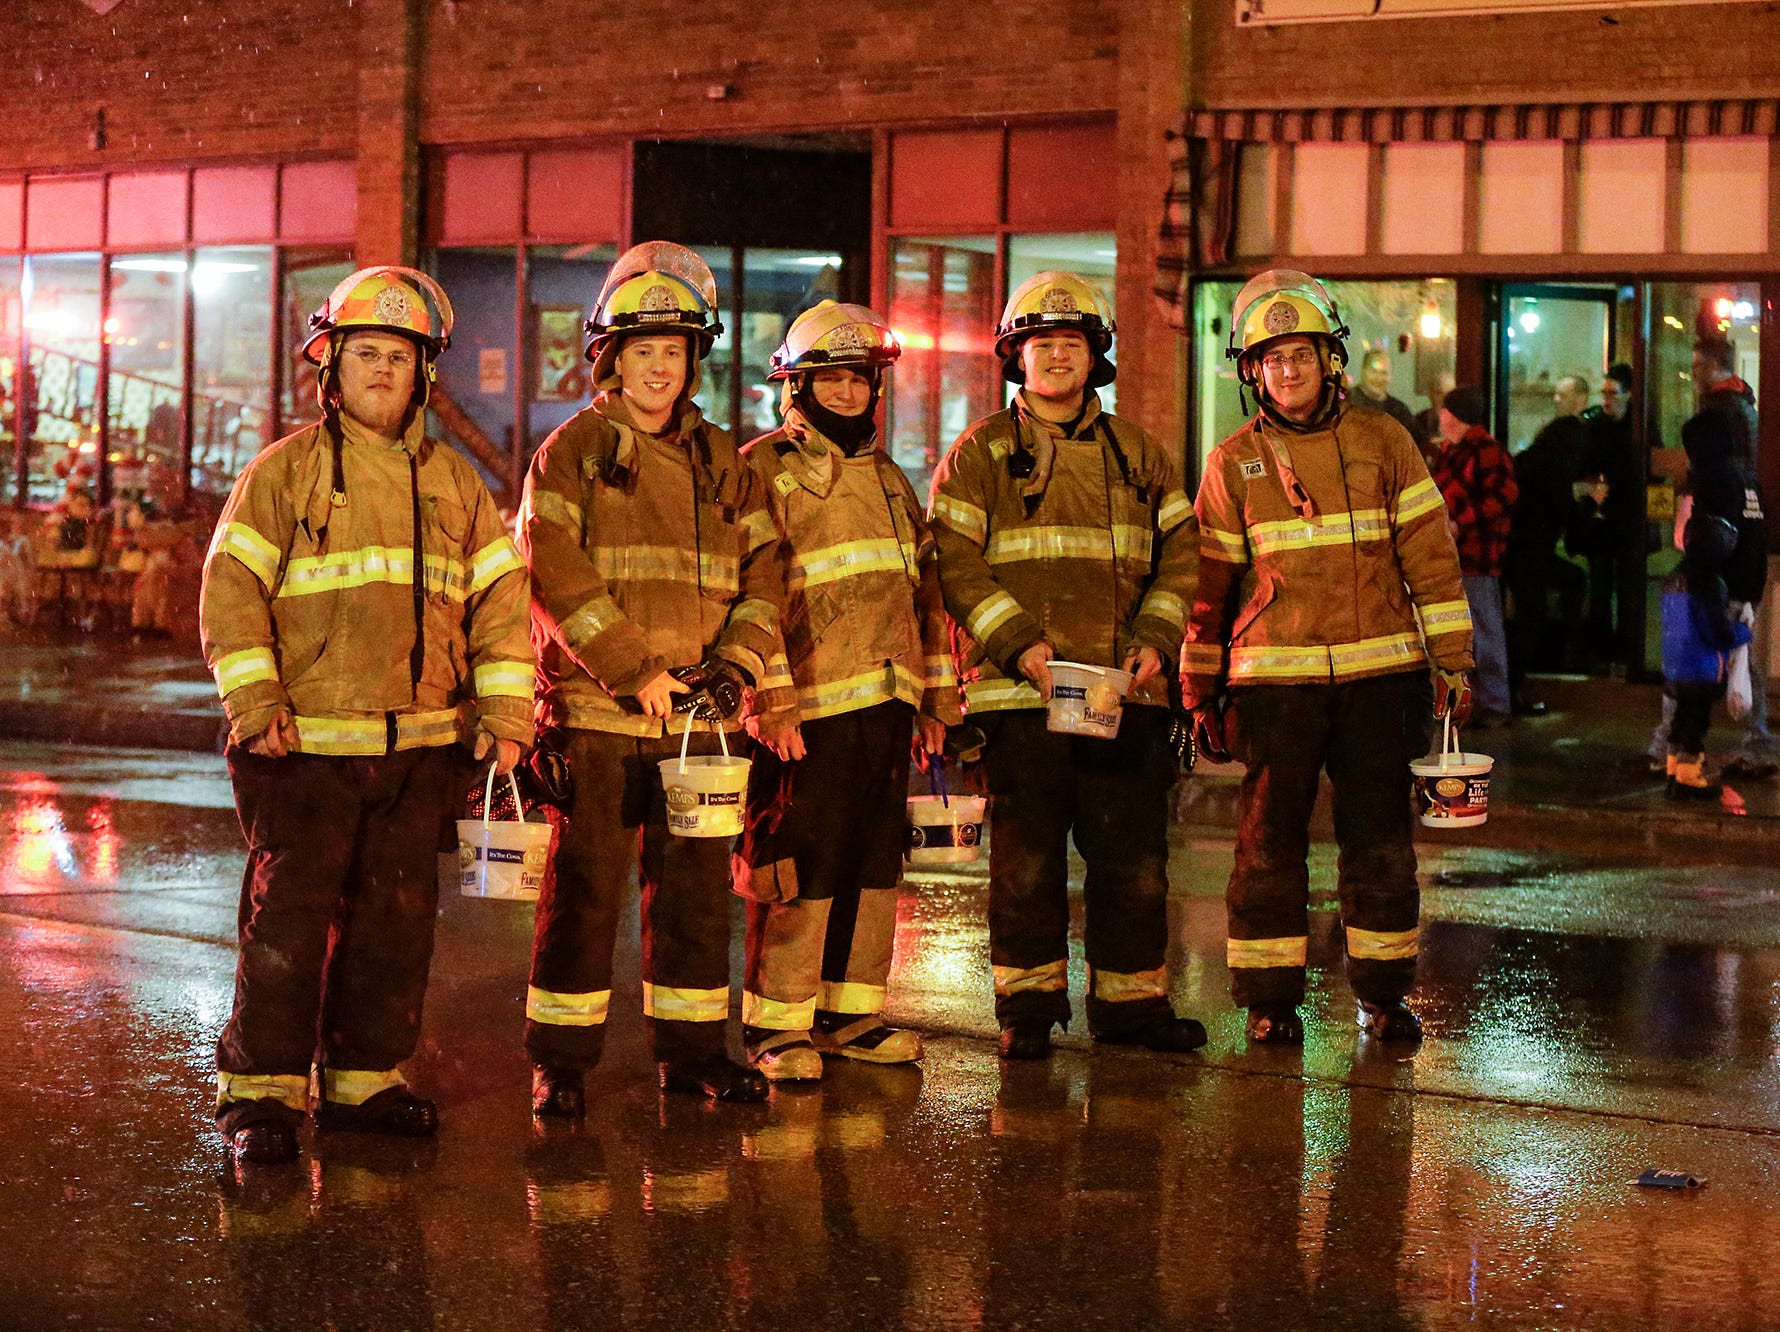 Members of the Town of Fond du Lac fire department pose during the downtown Fond du Lac Christmas parade Saturday, December 1, 2018. Doug Raflik/USA TODAY NETWORK-Wisconsin